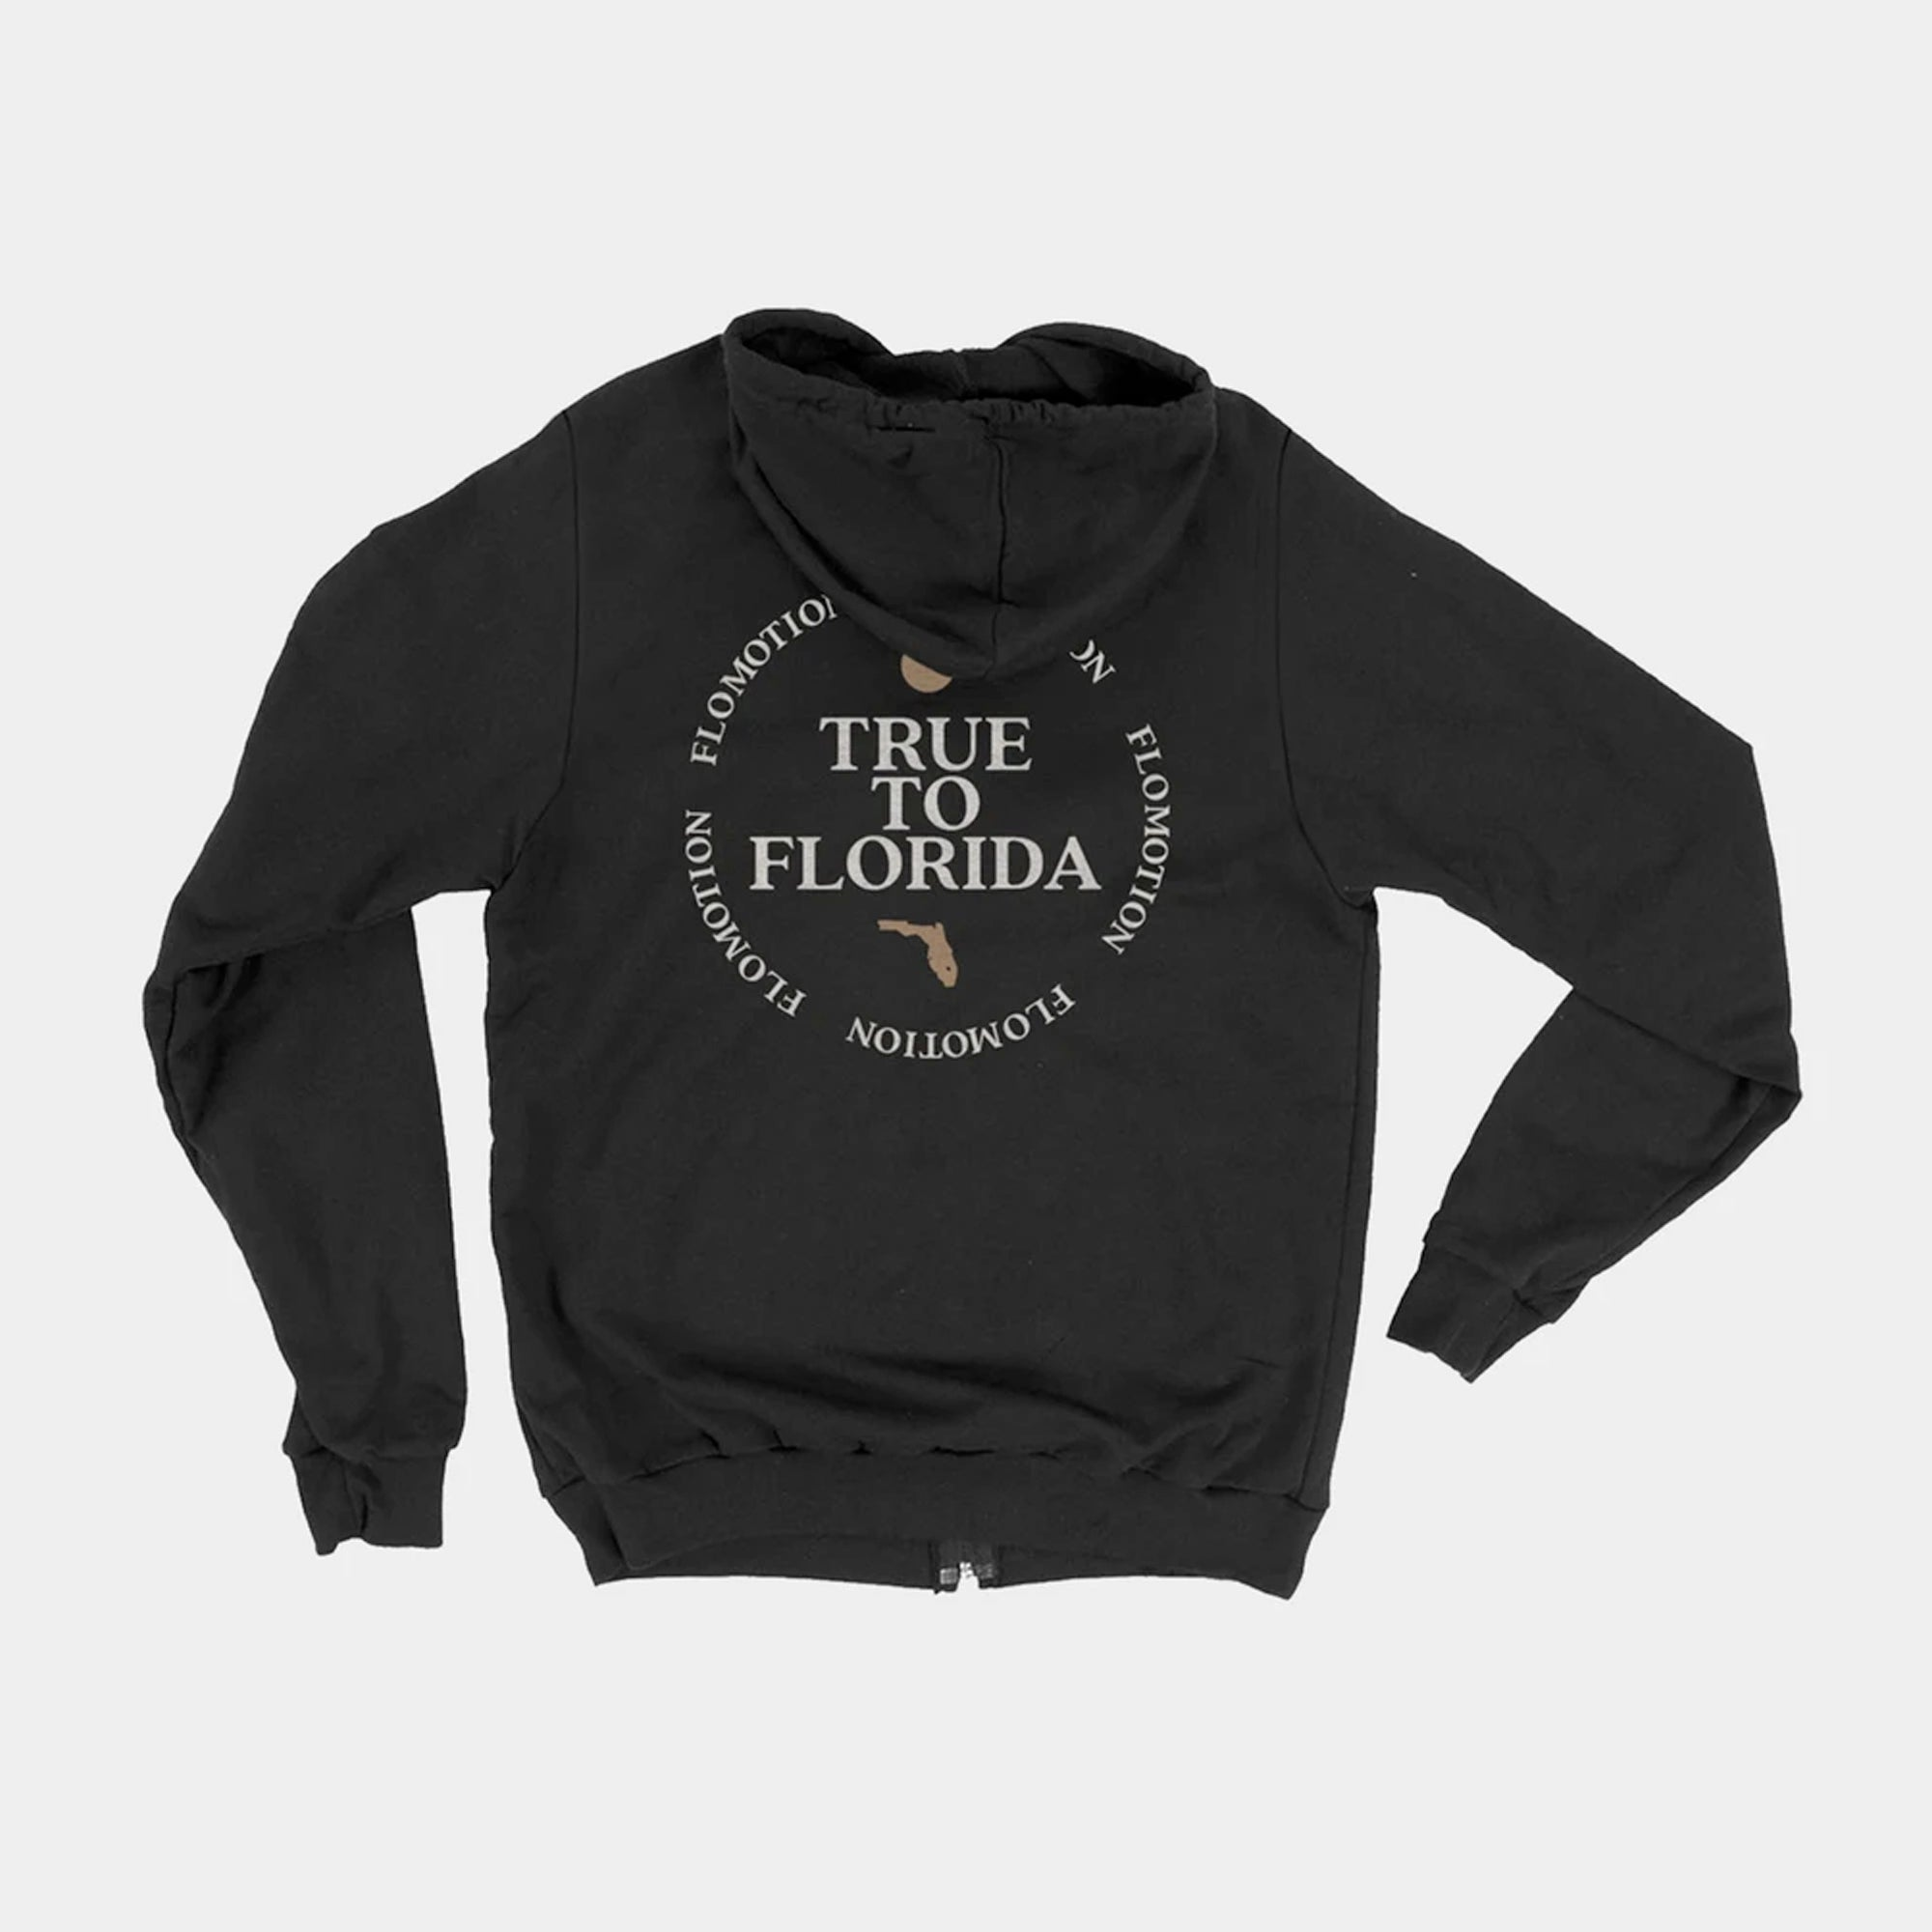 Flomotion True to Florida Men's Zip-Up Hoodie